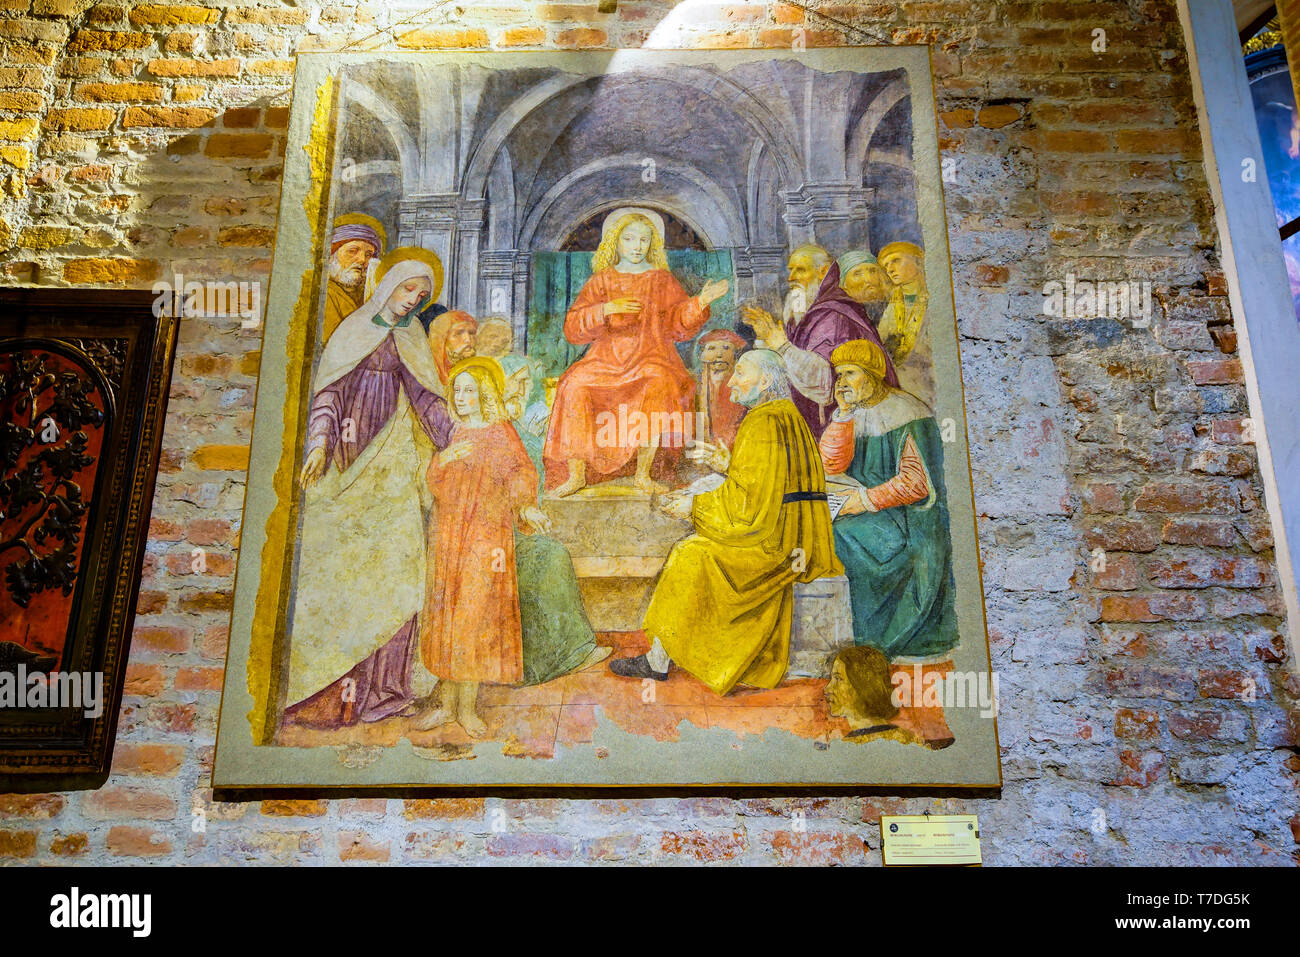 Jesus among the Doctors of the temple by artist Ambrogio Borgognone, Basilica di Sant'Ambrogio, Milan, Lombardy, Italy. - Stock Image